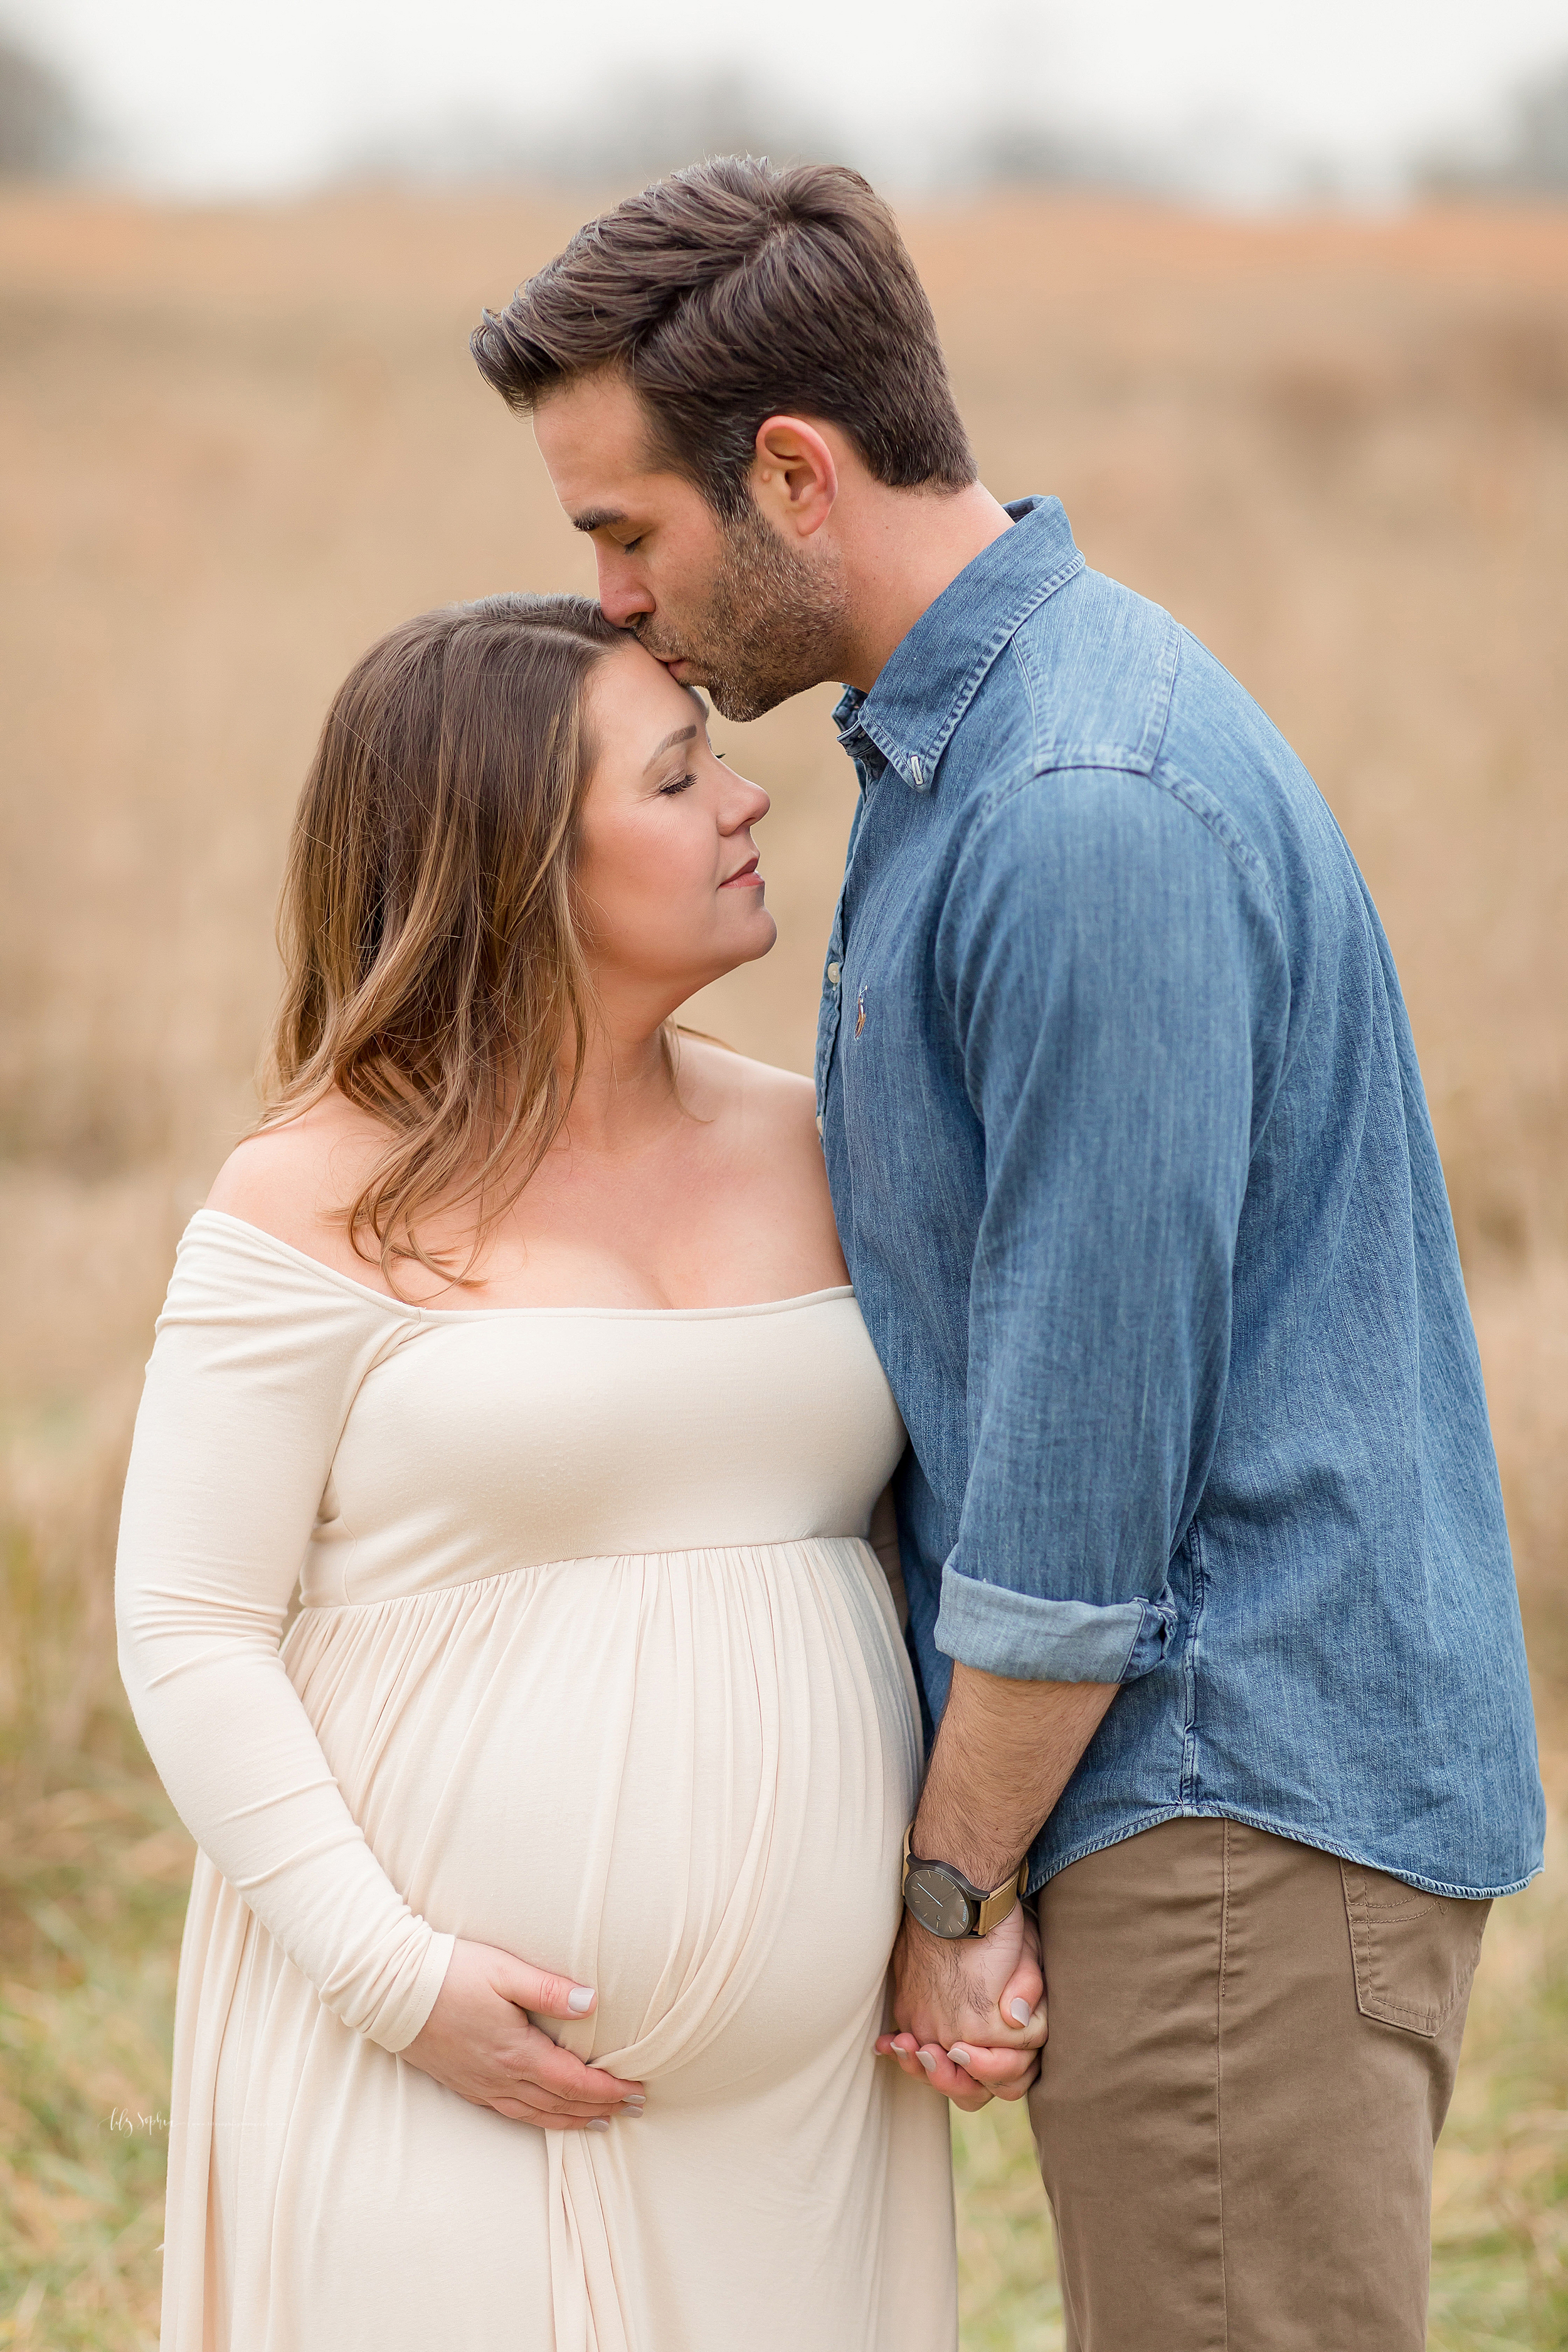 A pregnant wife and her husband are standing in a field in Atlanta.  The husband kisses his wife's forehead as she closes her eyes and holds her pregnant belly in her hand.  The couple holds hands.